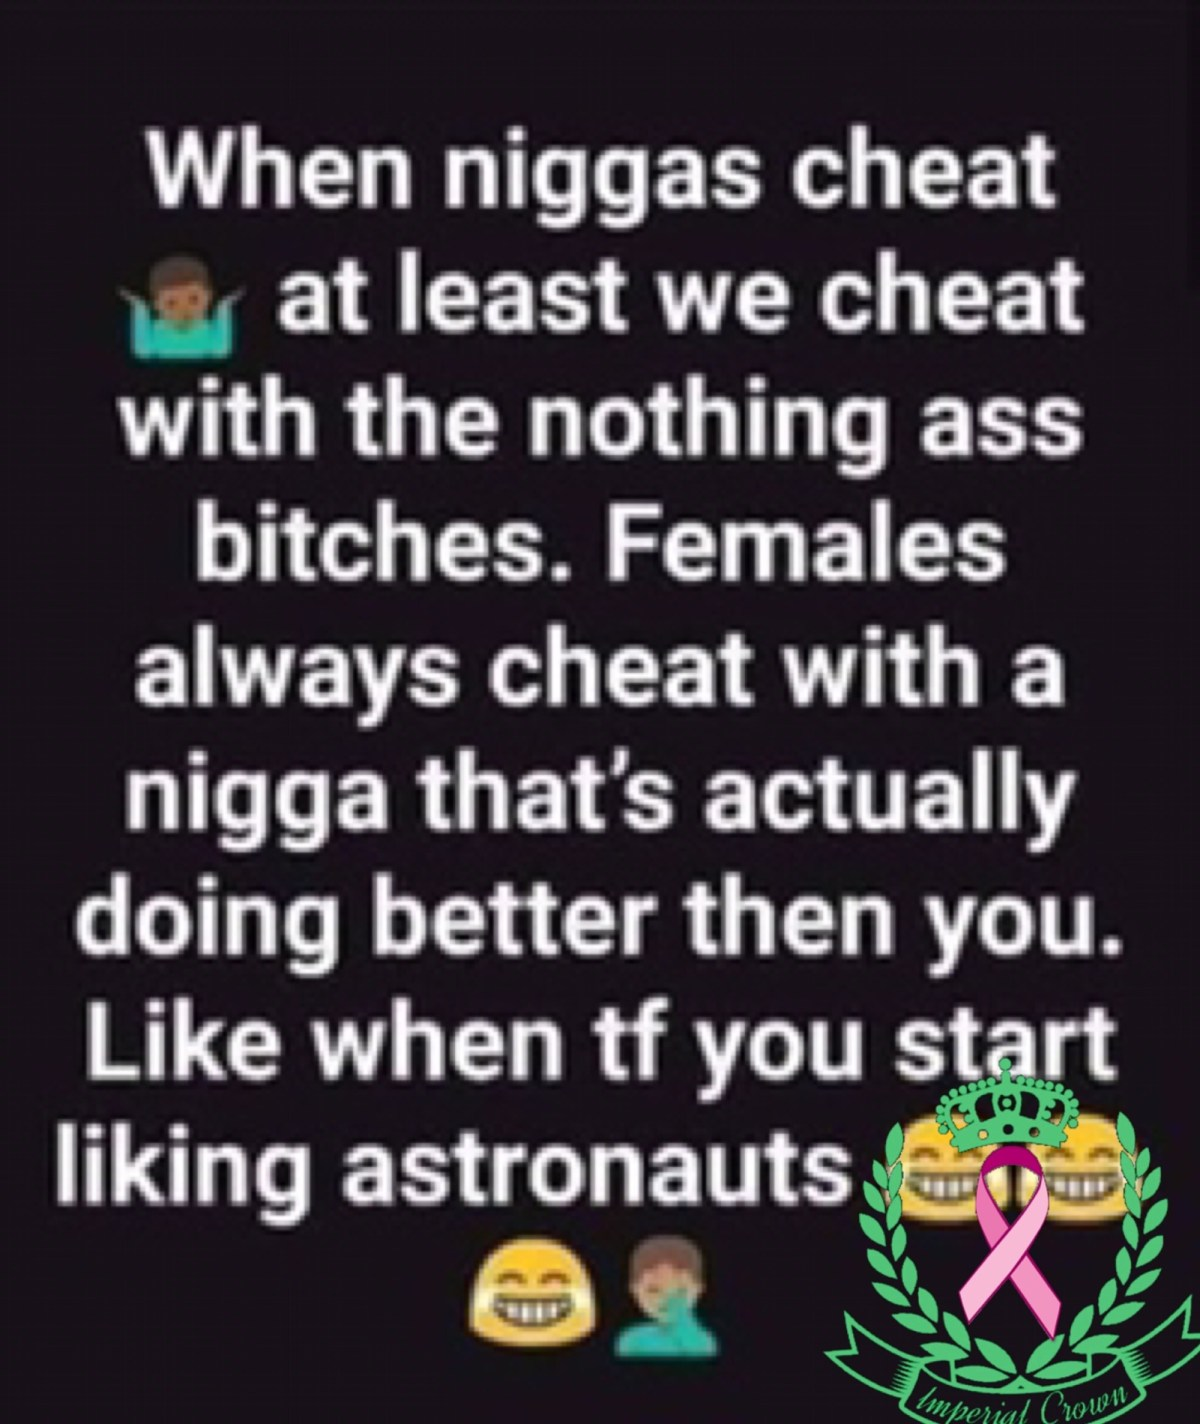 When niggas cheat at least we cheat with the nothing ass bitches females always cheat with a nigga that's actually